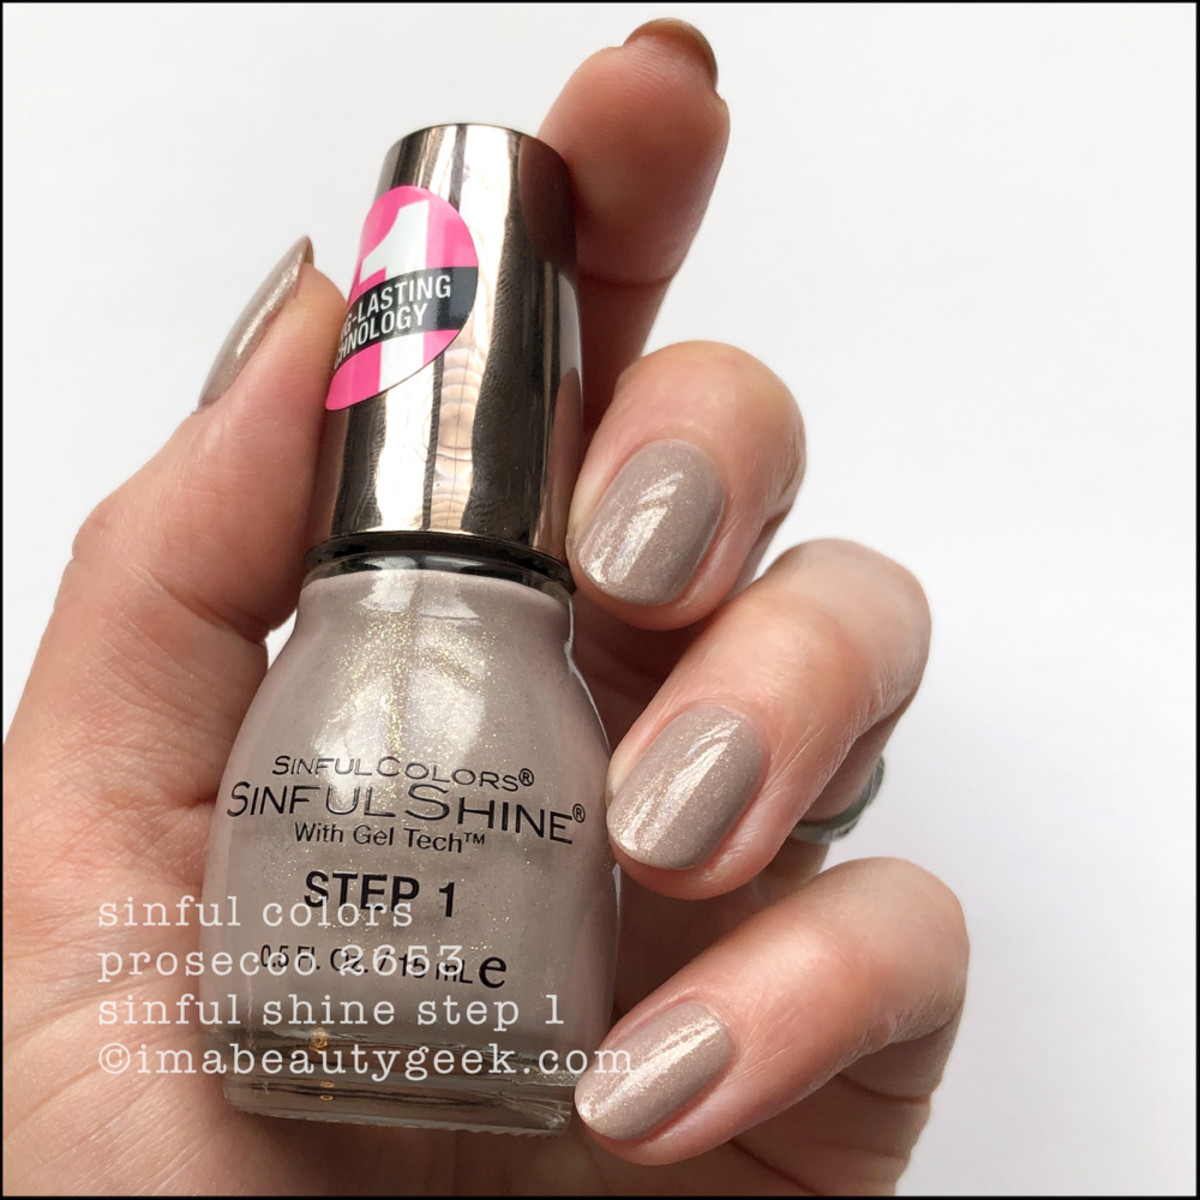 Sinful Colors Prosecco - Sinful Colors Swatches Sinful Shine 2019